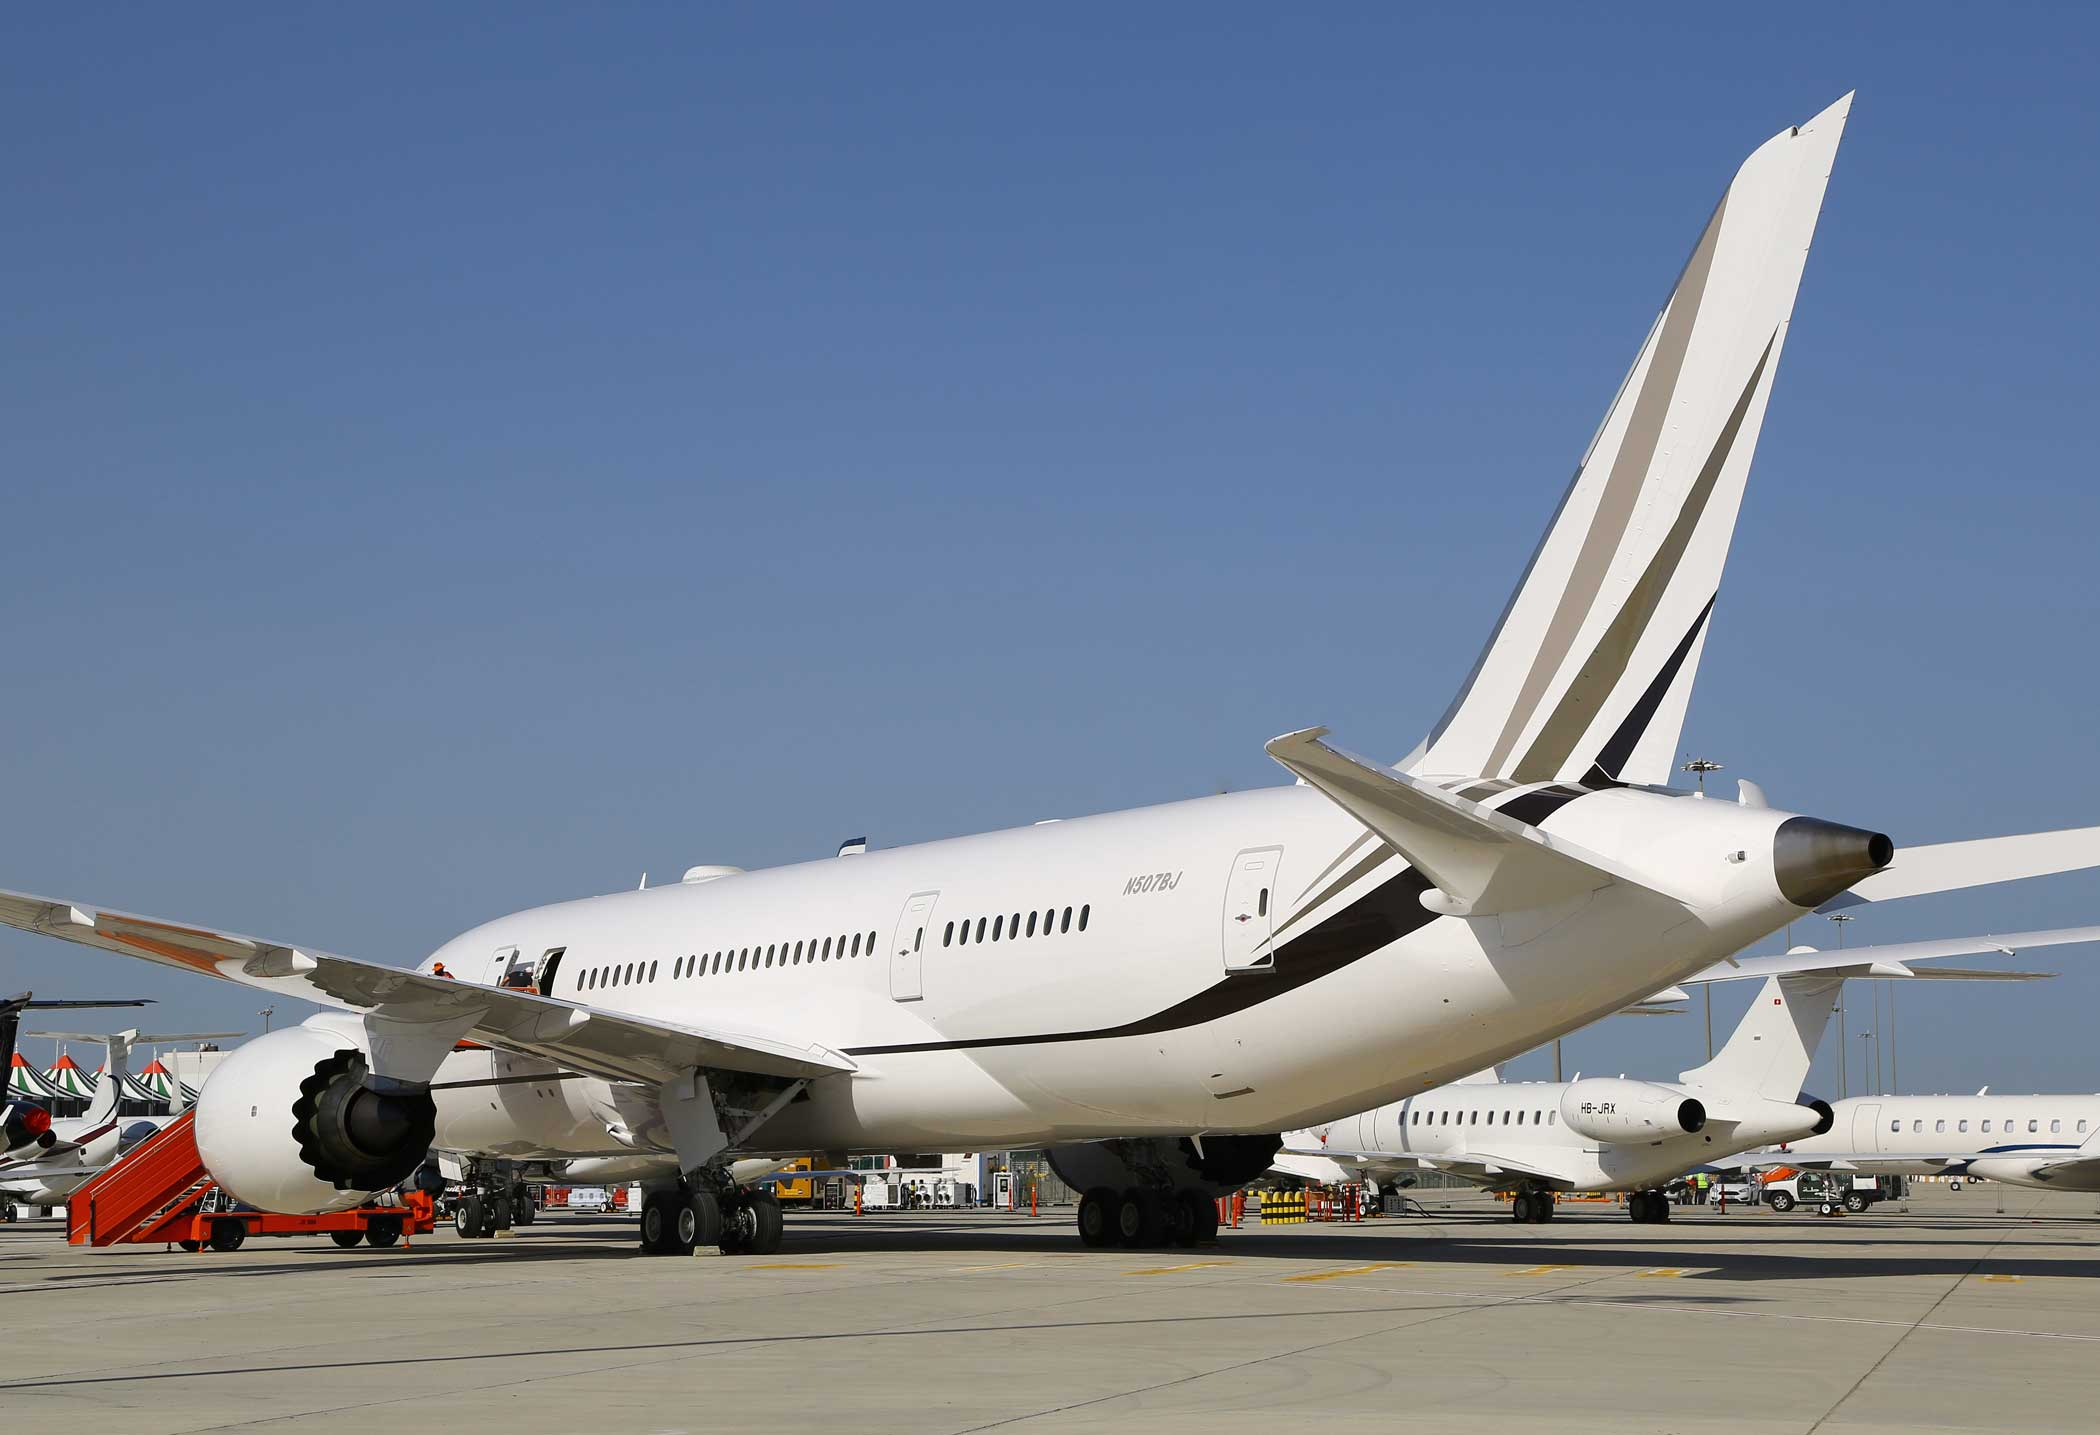 Newest VIP BBJ 787 Arrives in Dubai | Business Aviation News